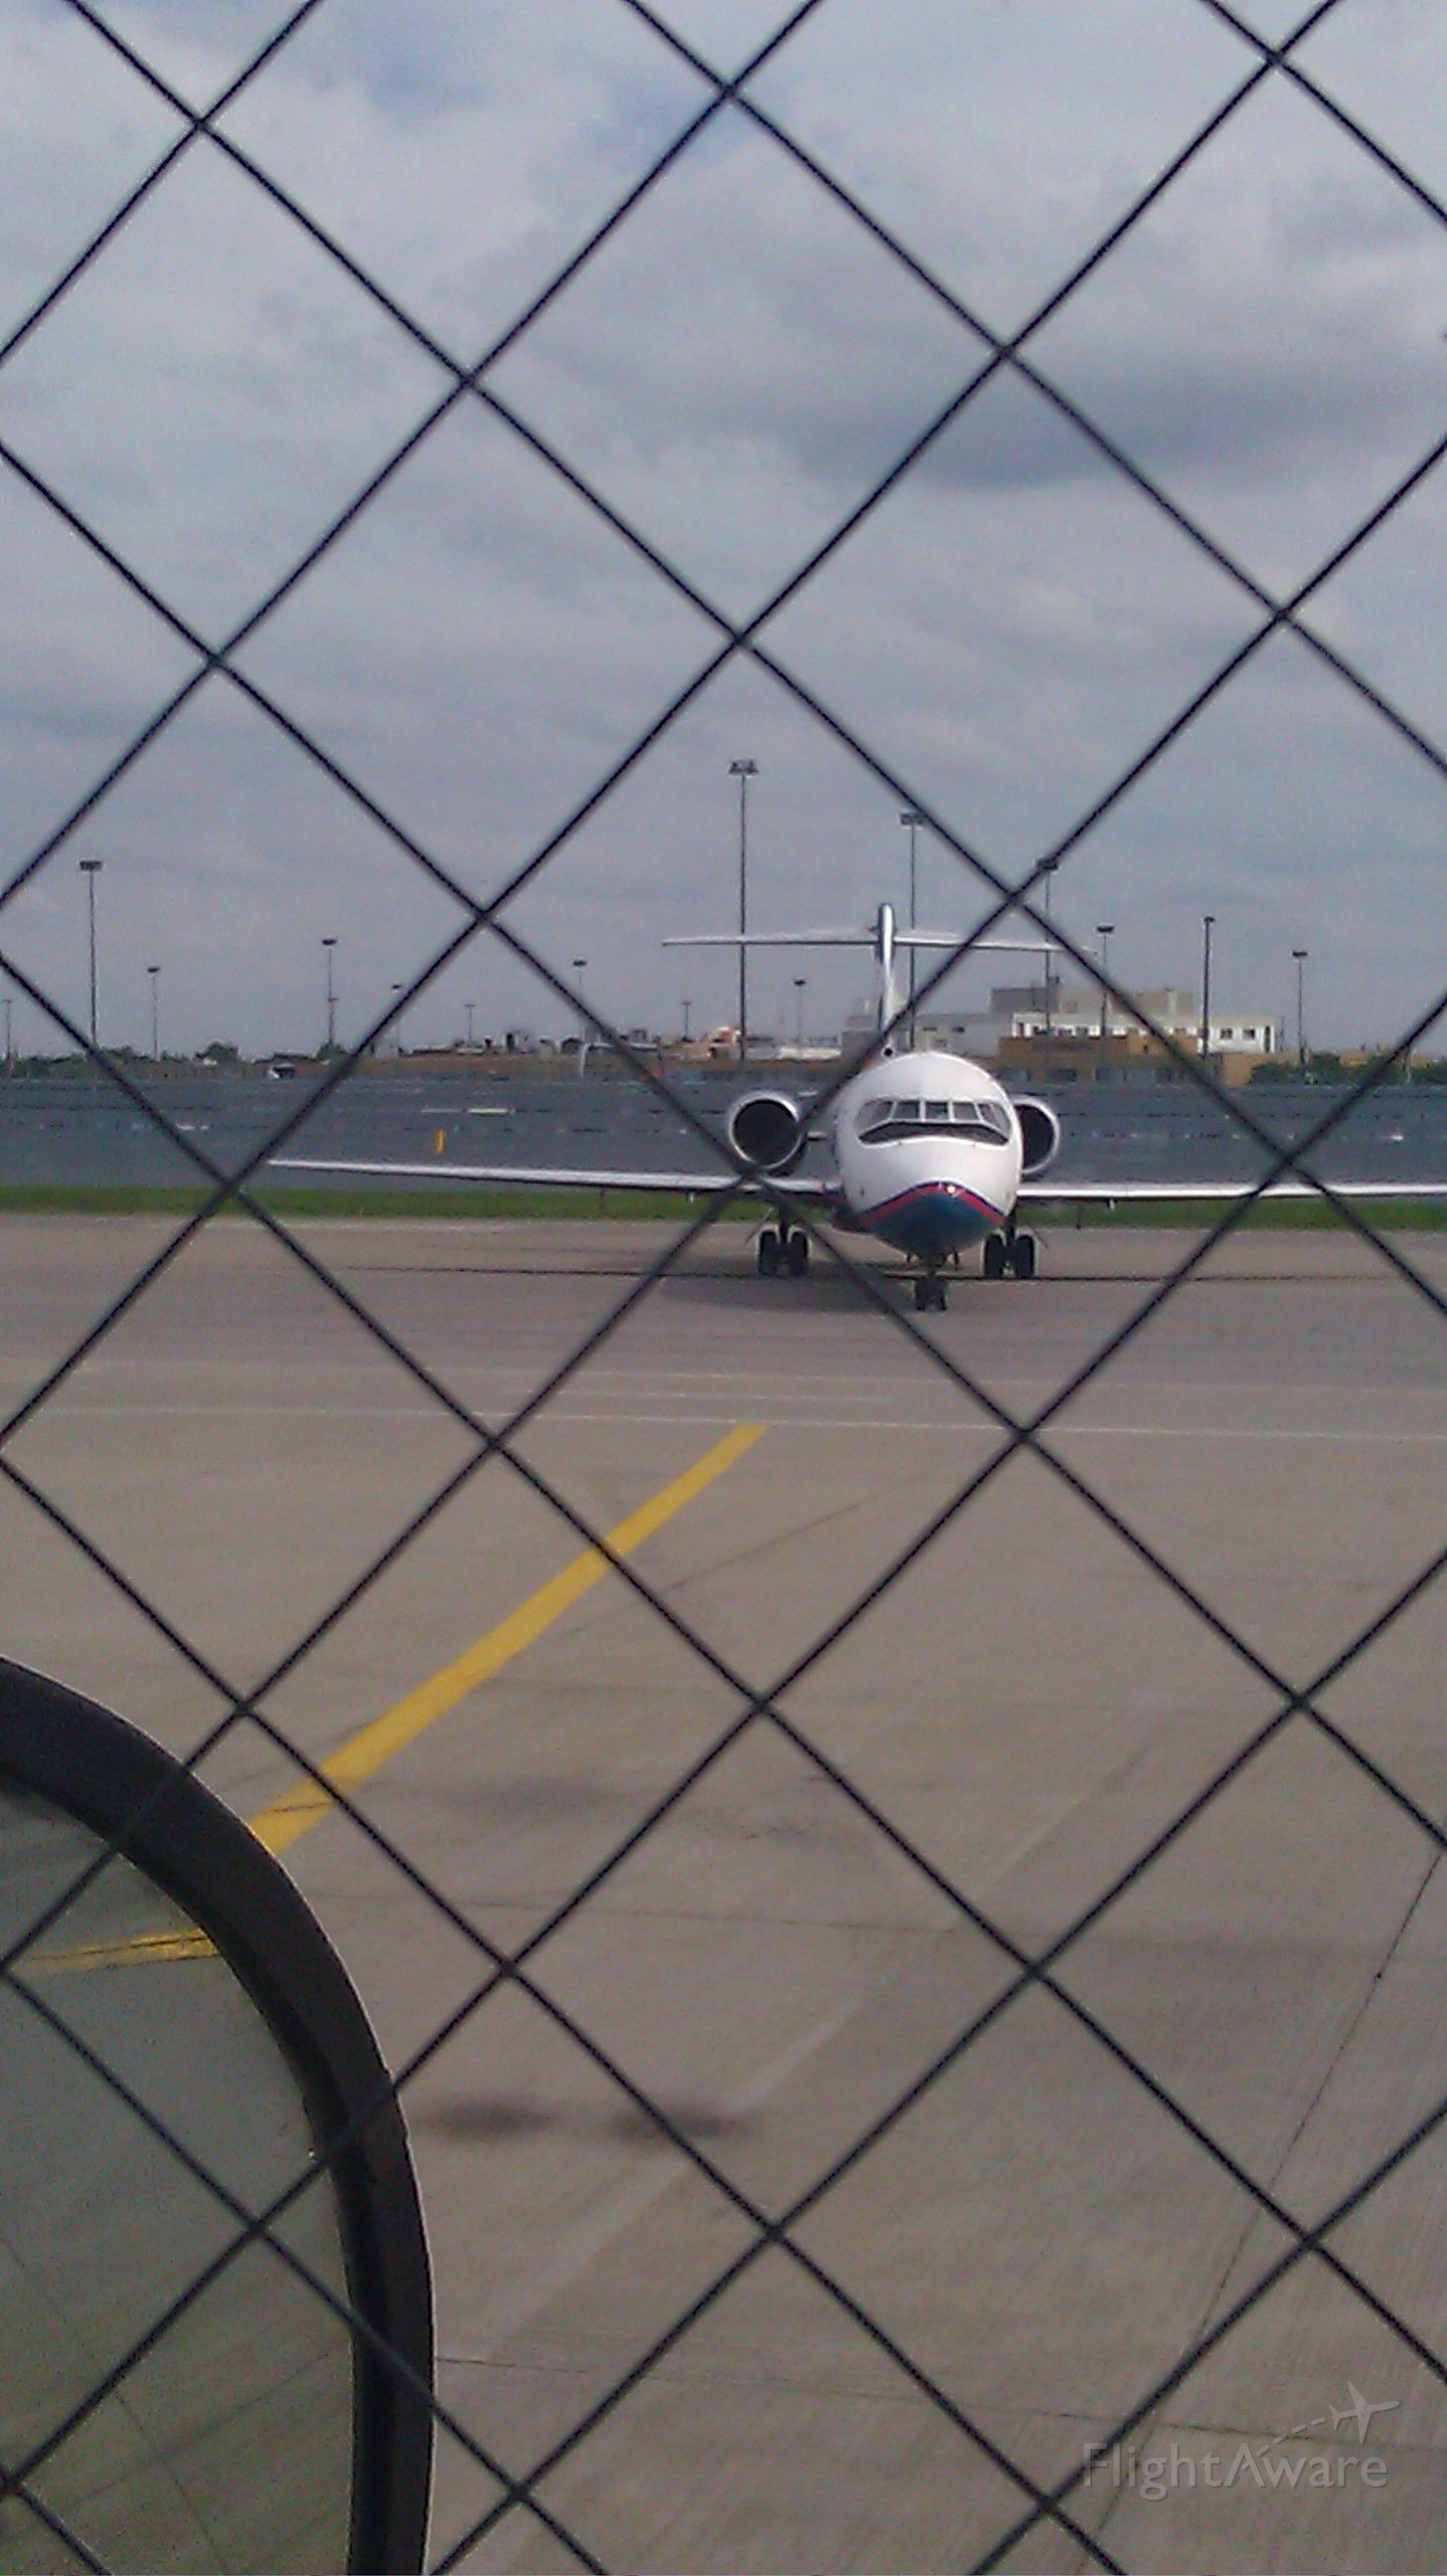 Boeing 717-200 — - Flight 1182 arriving in BUF on 8-27-2011. As seen on gate 14.